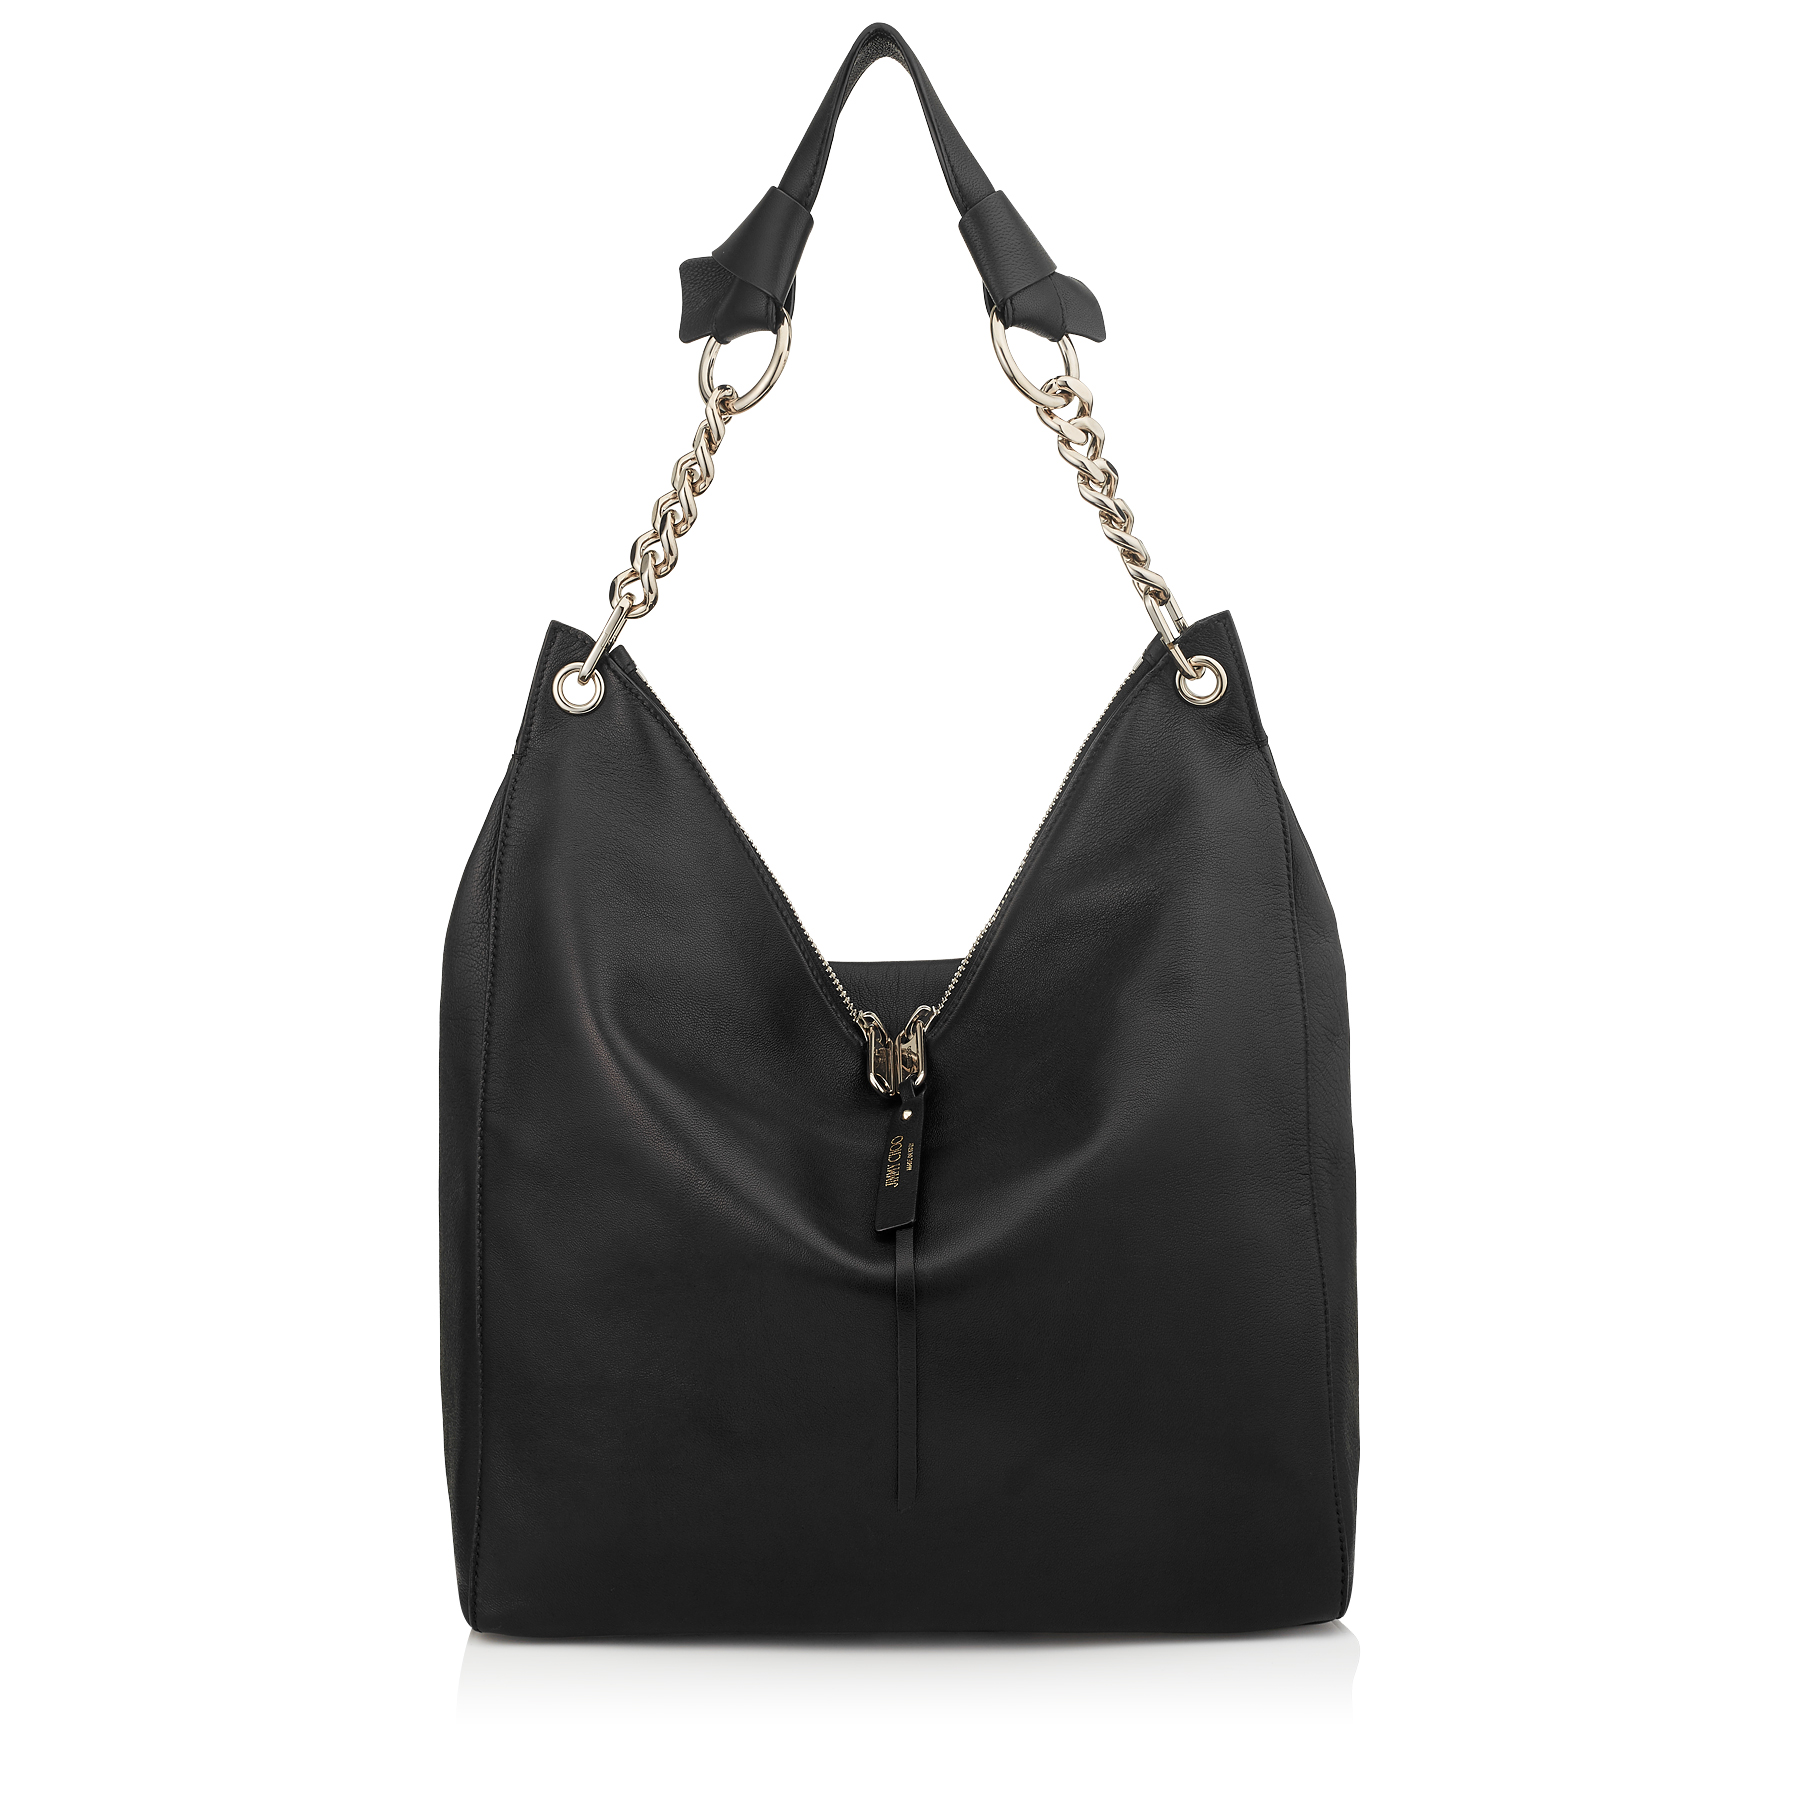 RAVEN Black Nappa Leather Shoulder Bag